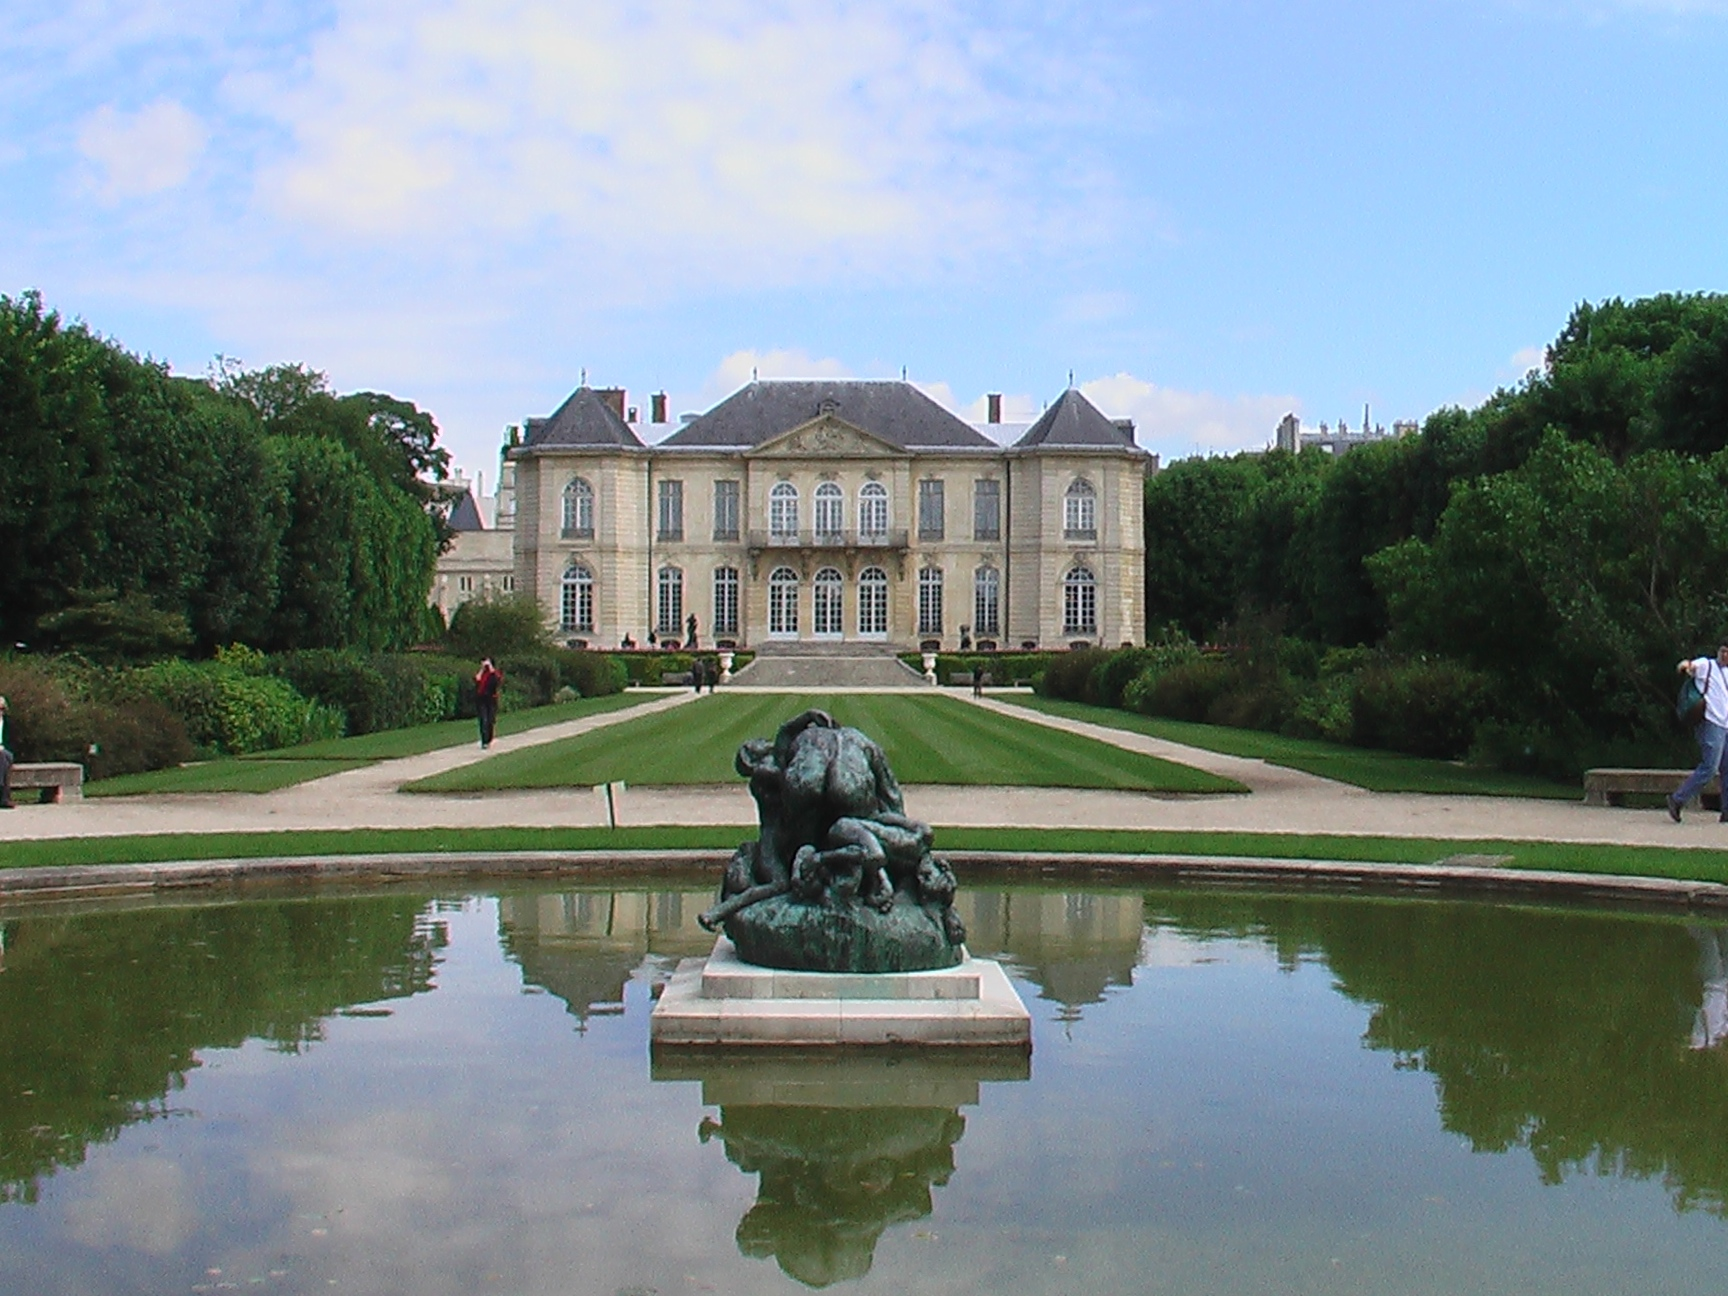 Paris, Musée Rodin, long view